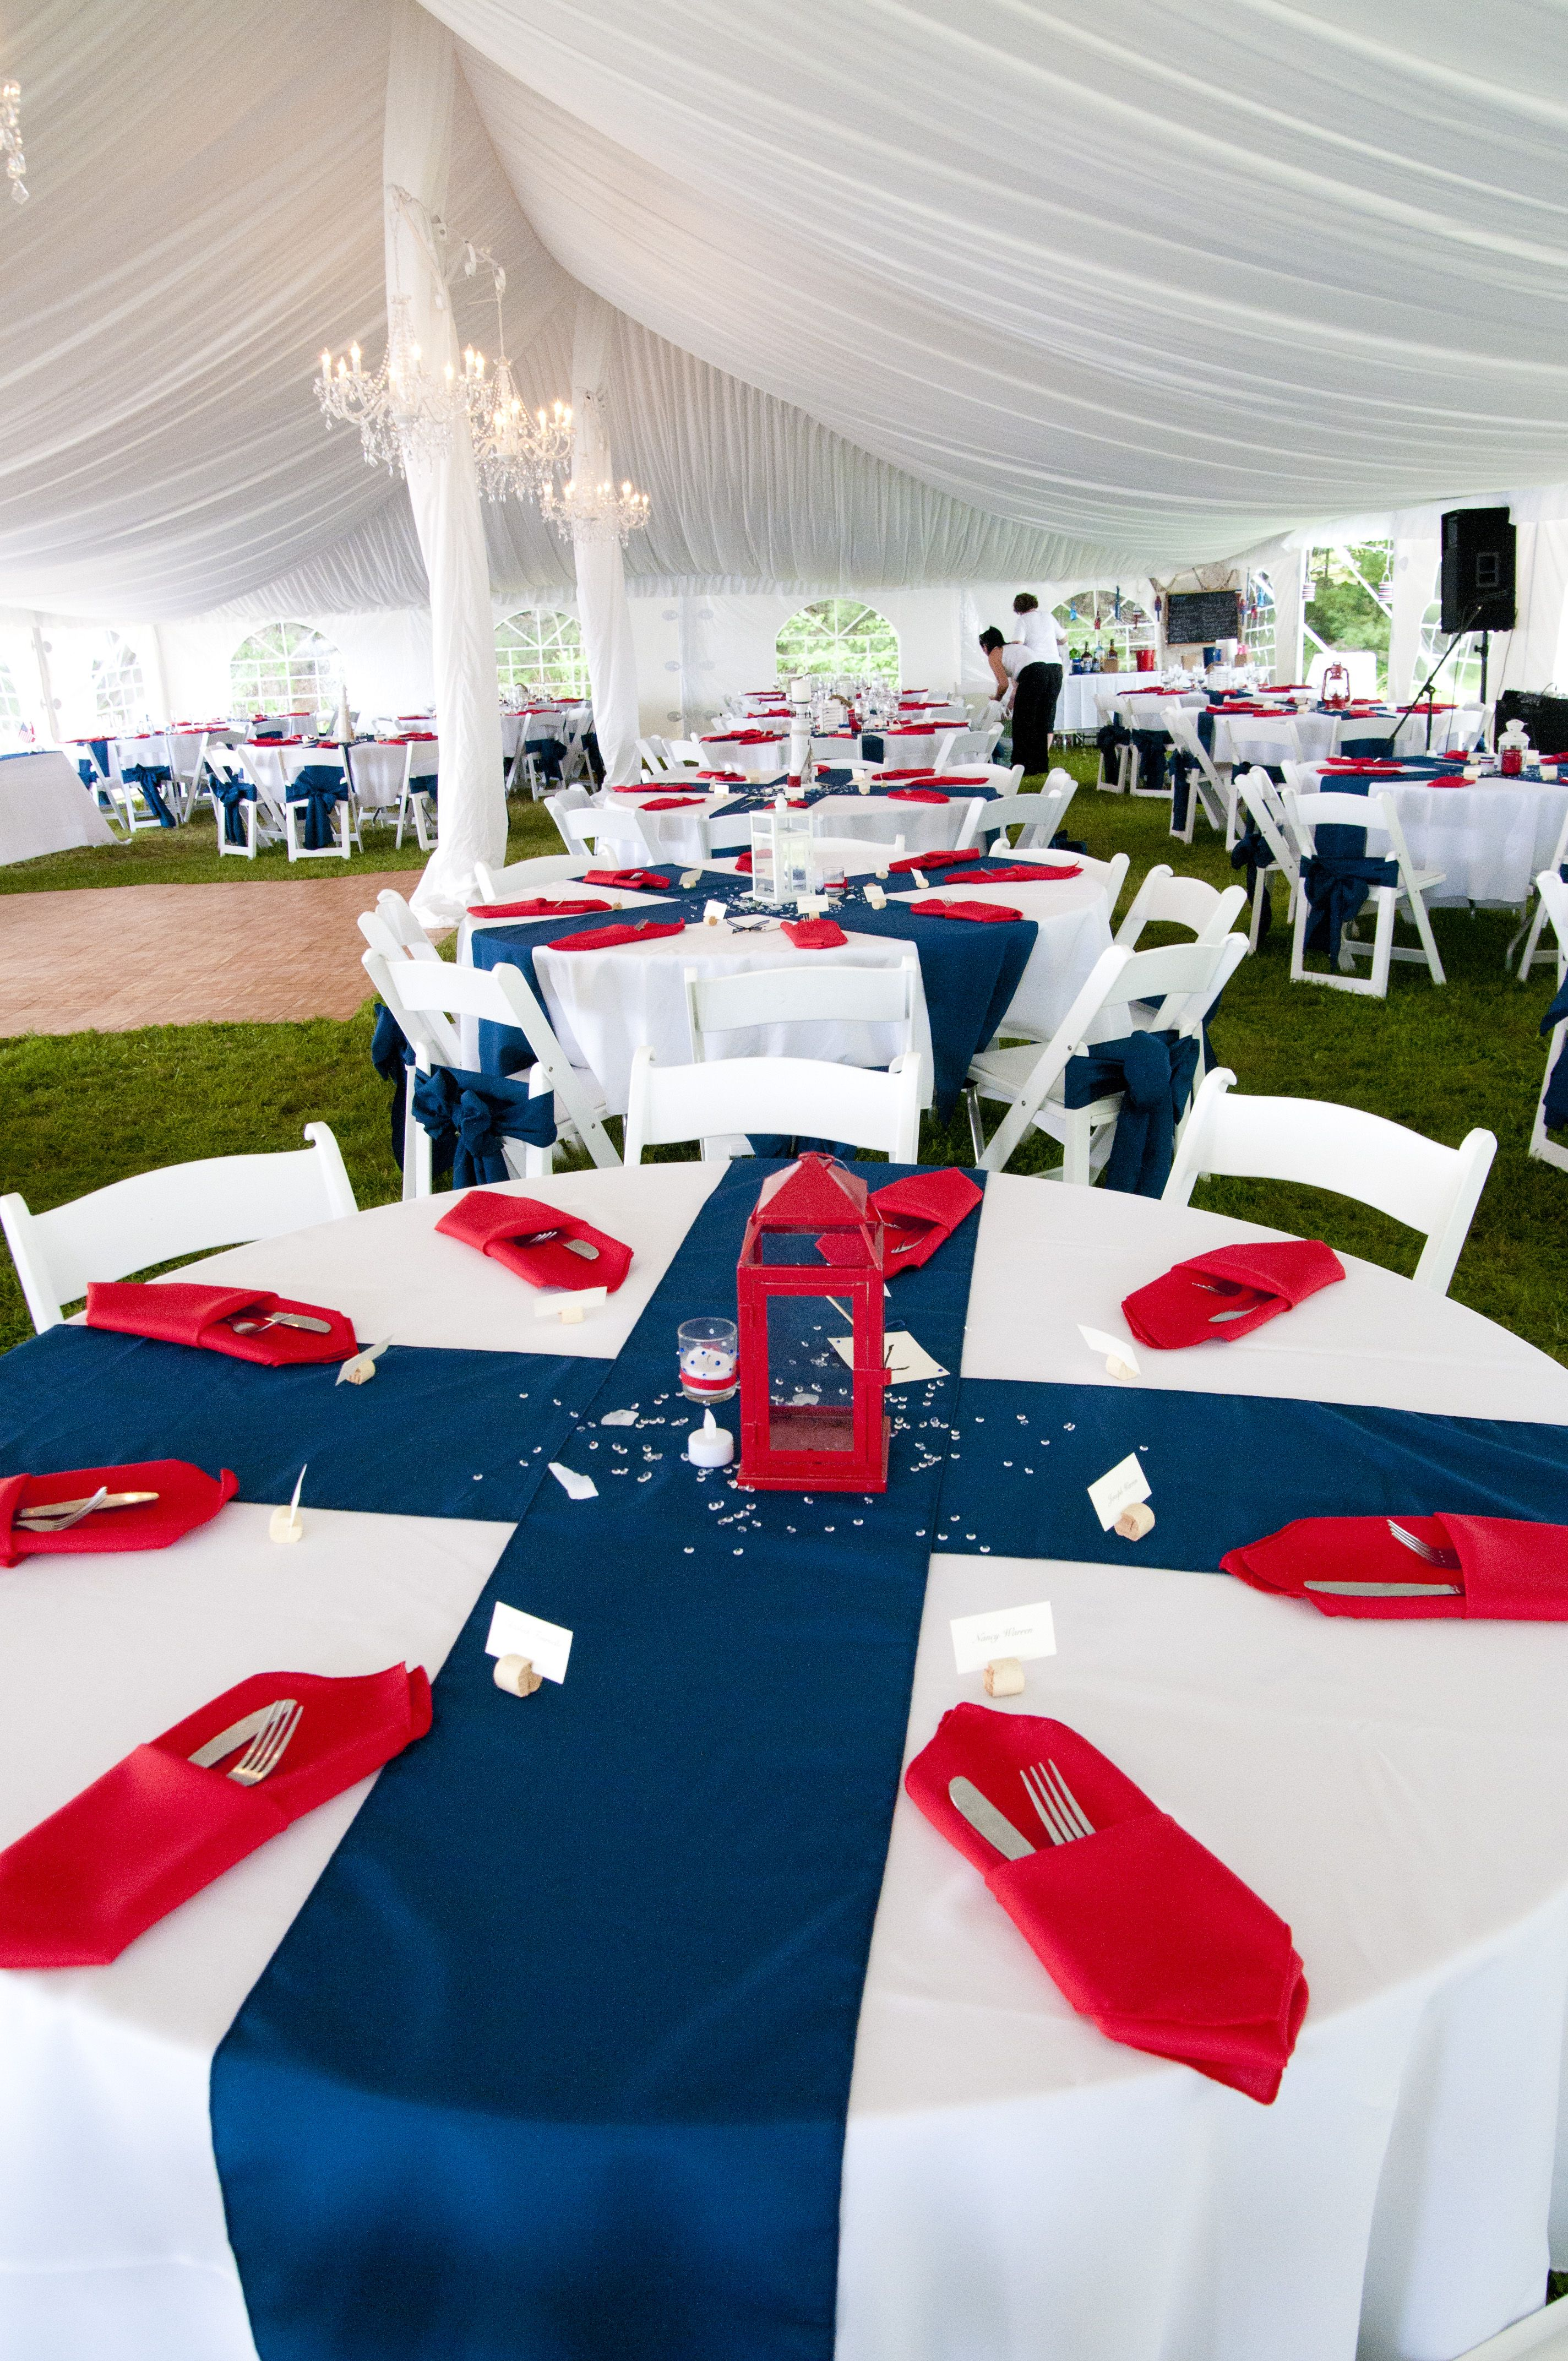 White Table Cloths Blue Runners Red Napkins A Dance Floor Chandeliers We Ed Pa System For Music And Sches